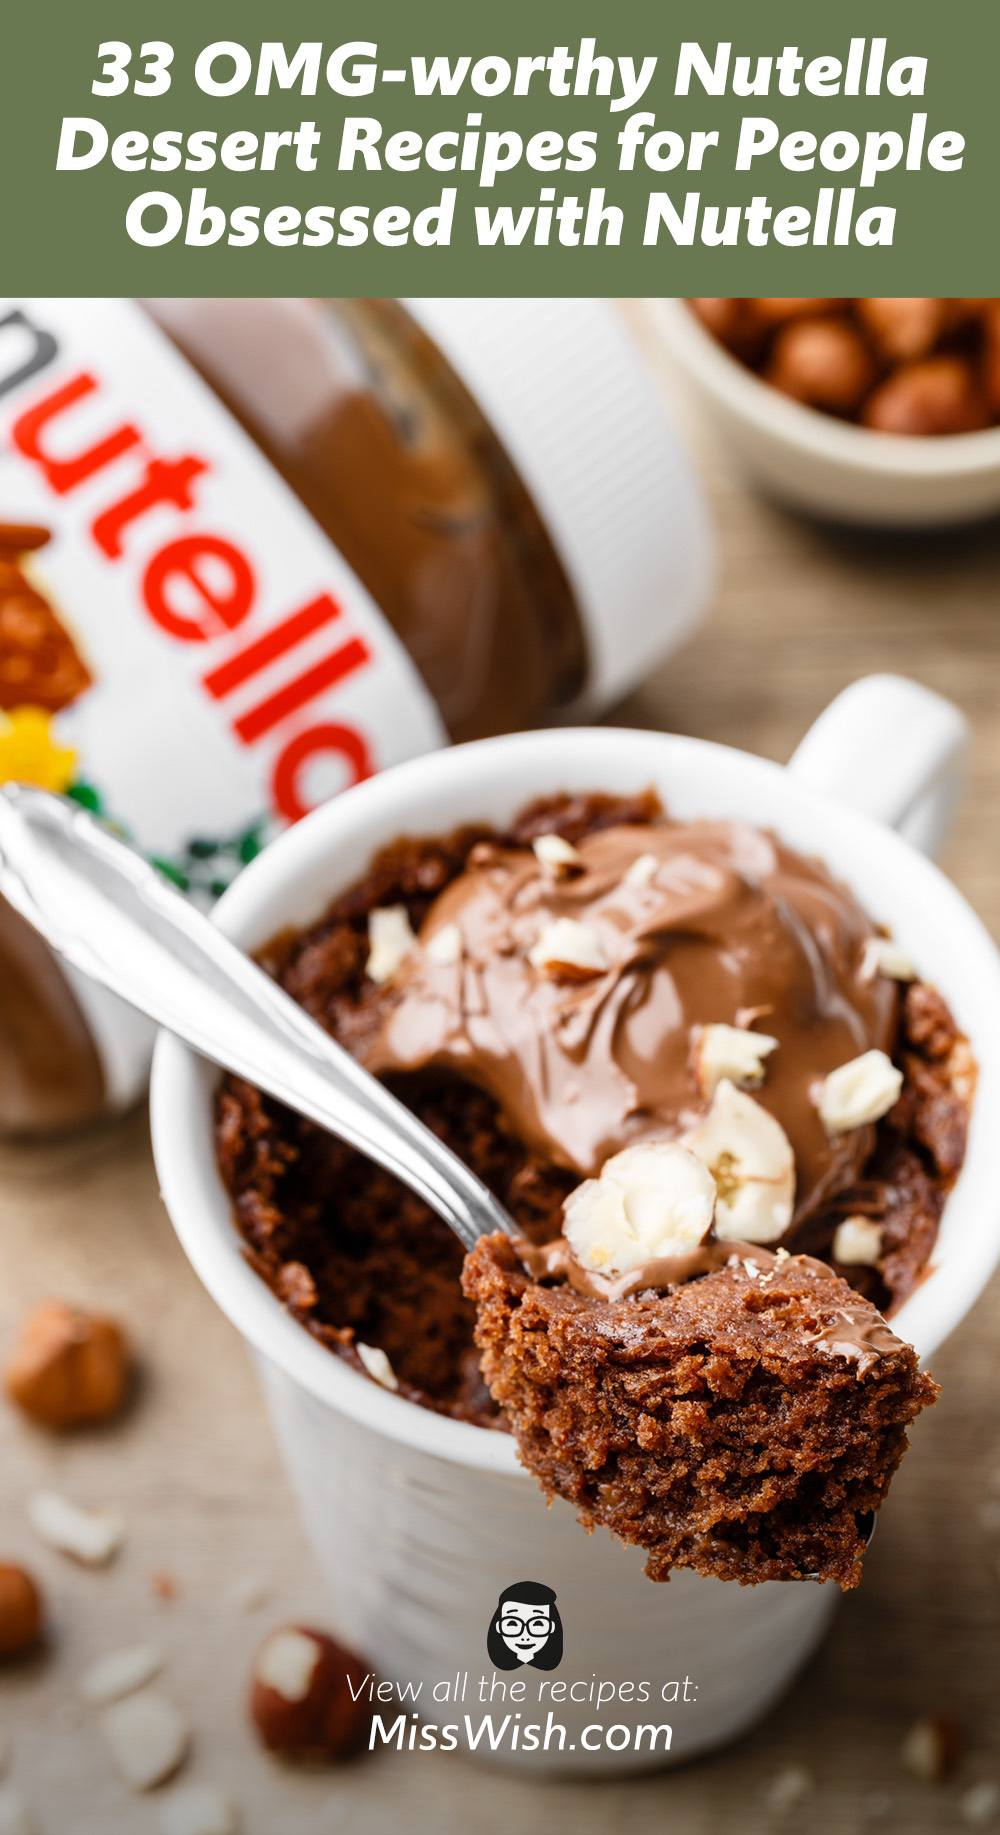 33 OMG-worthy Nutella Dessert Recipes for People Obsessed with Nutella